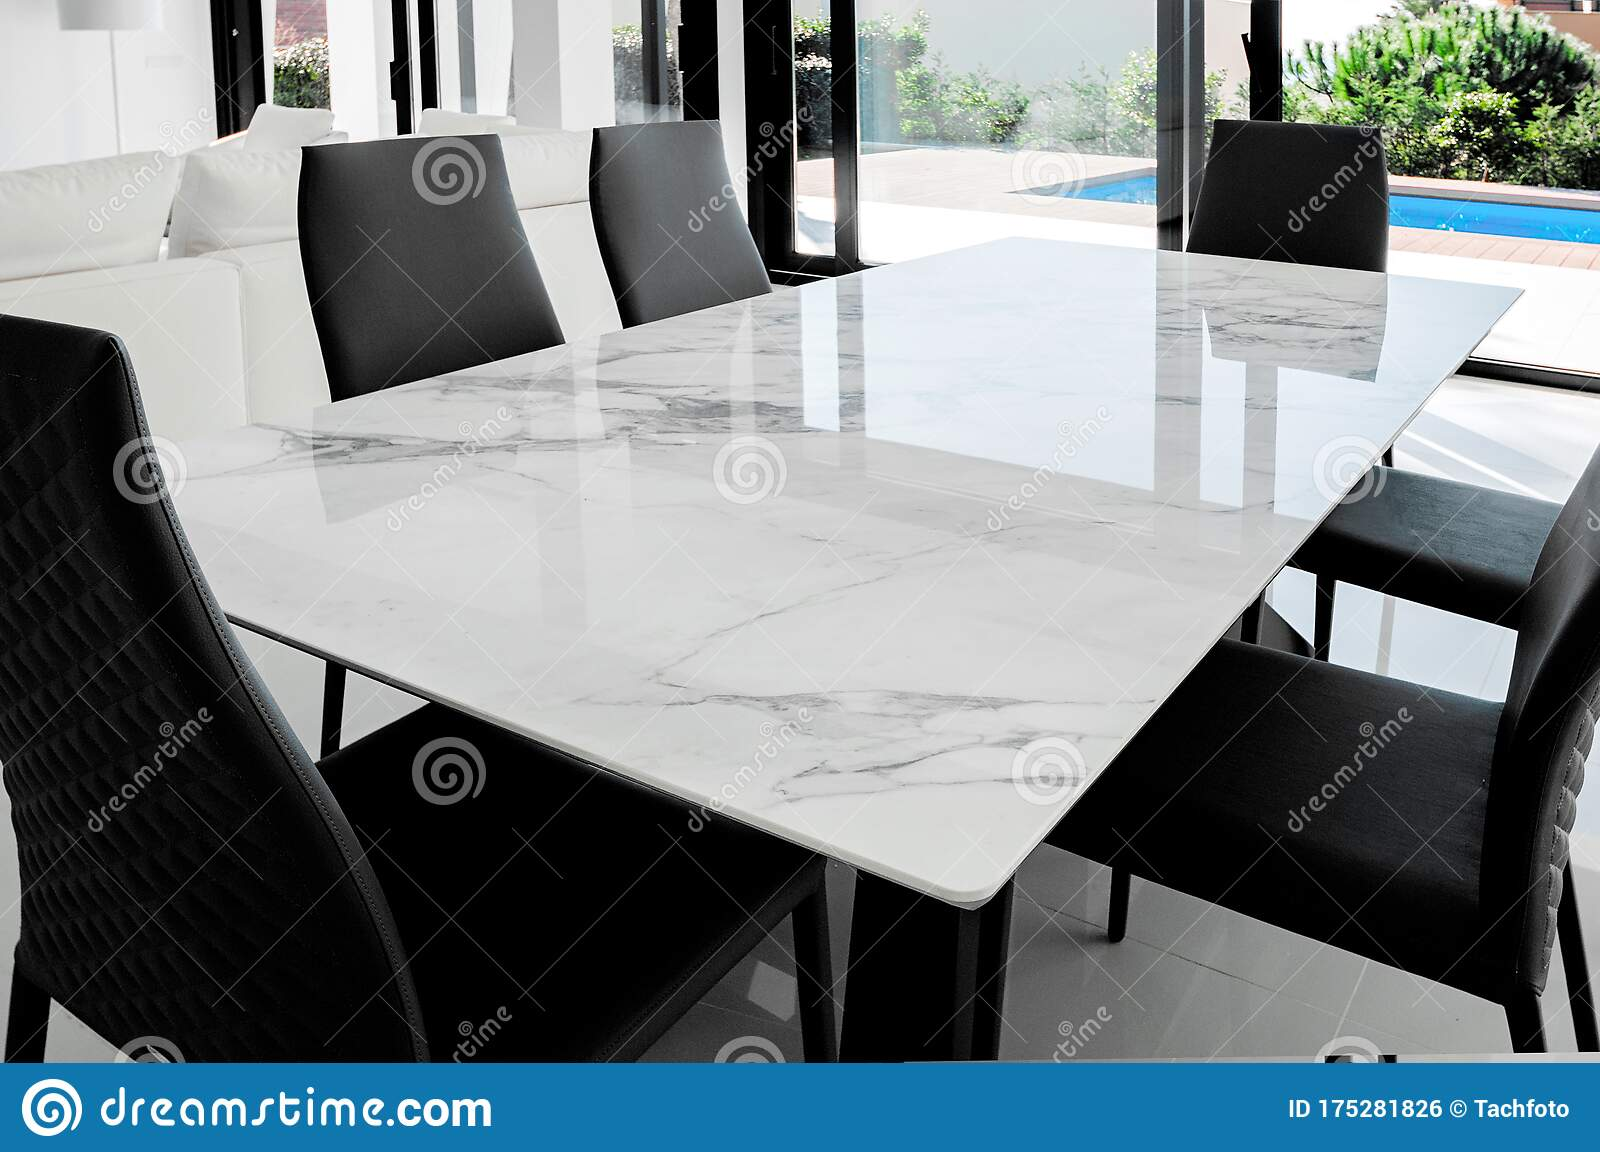 Picture of: Luxurious Marble Dining Table With Black Chairs Stock Photo Image Of Kitchen Dinner 175281826